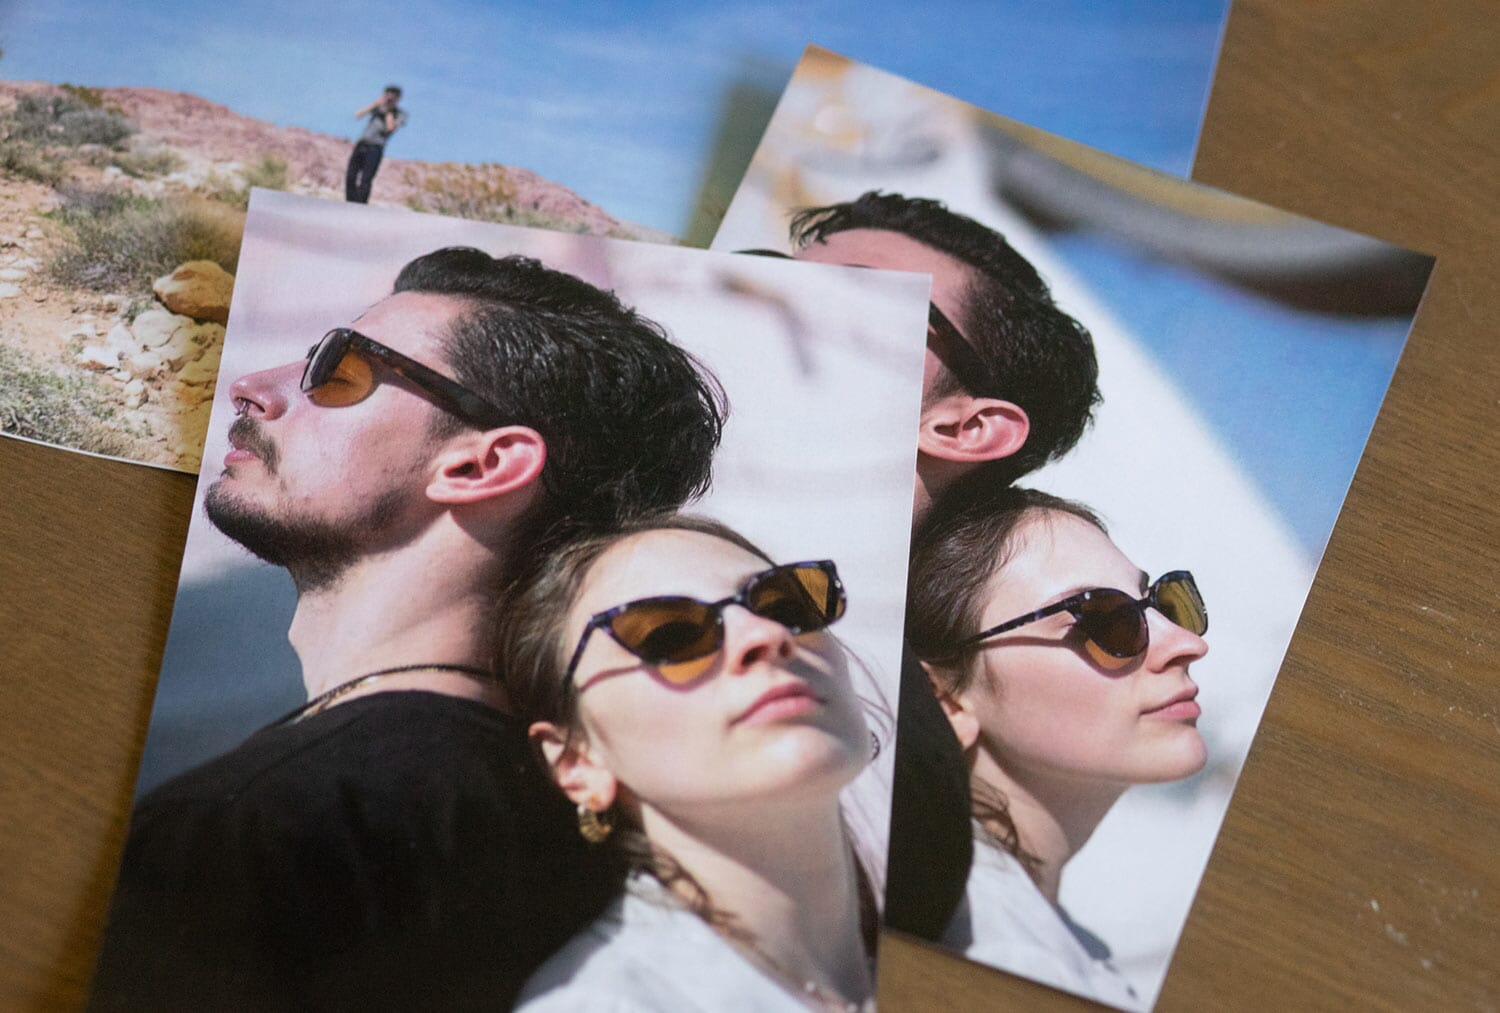 printing your photos online